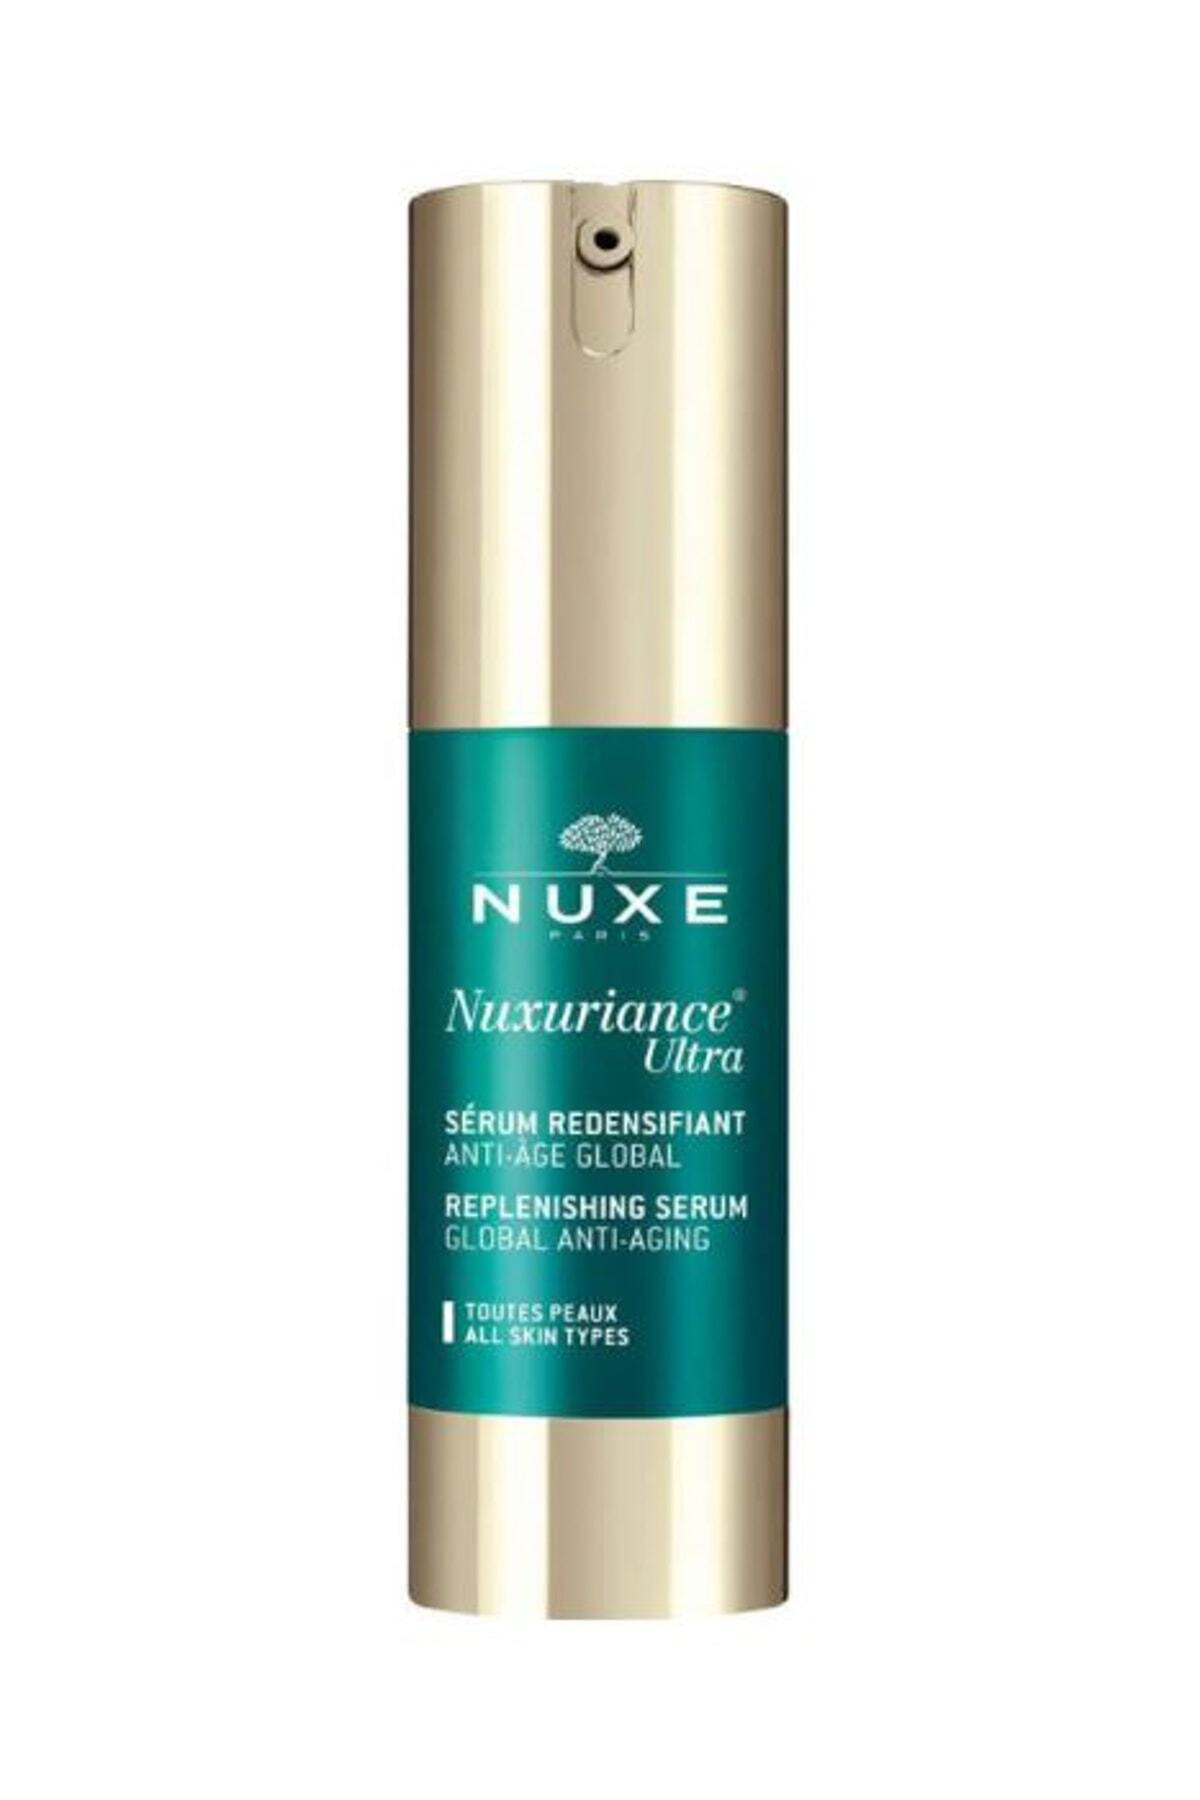 Nuxe Nuxuriance Ultra Replenishing Serum 30 ml 1